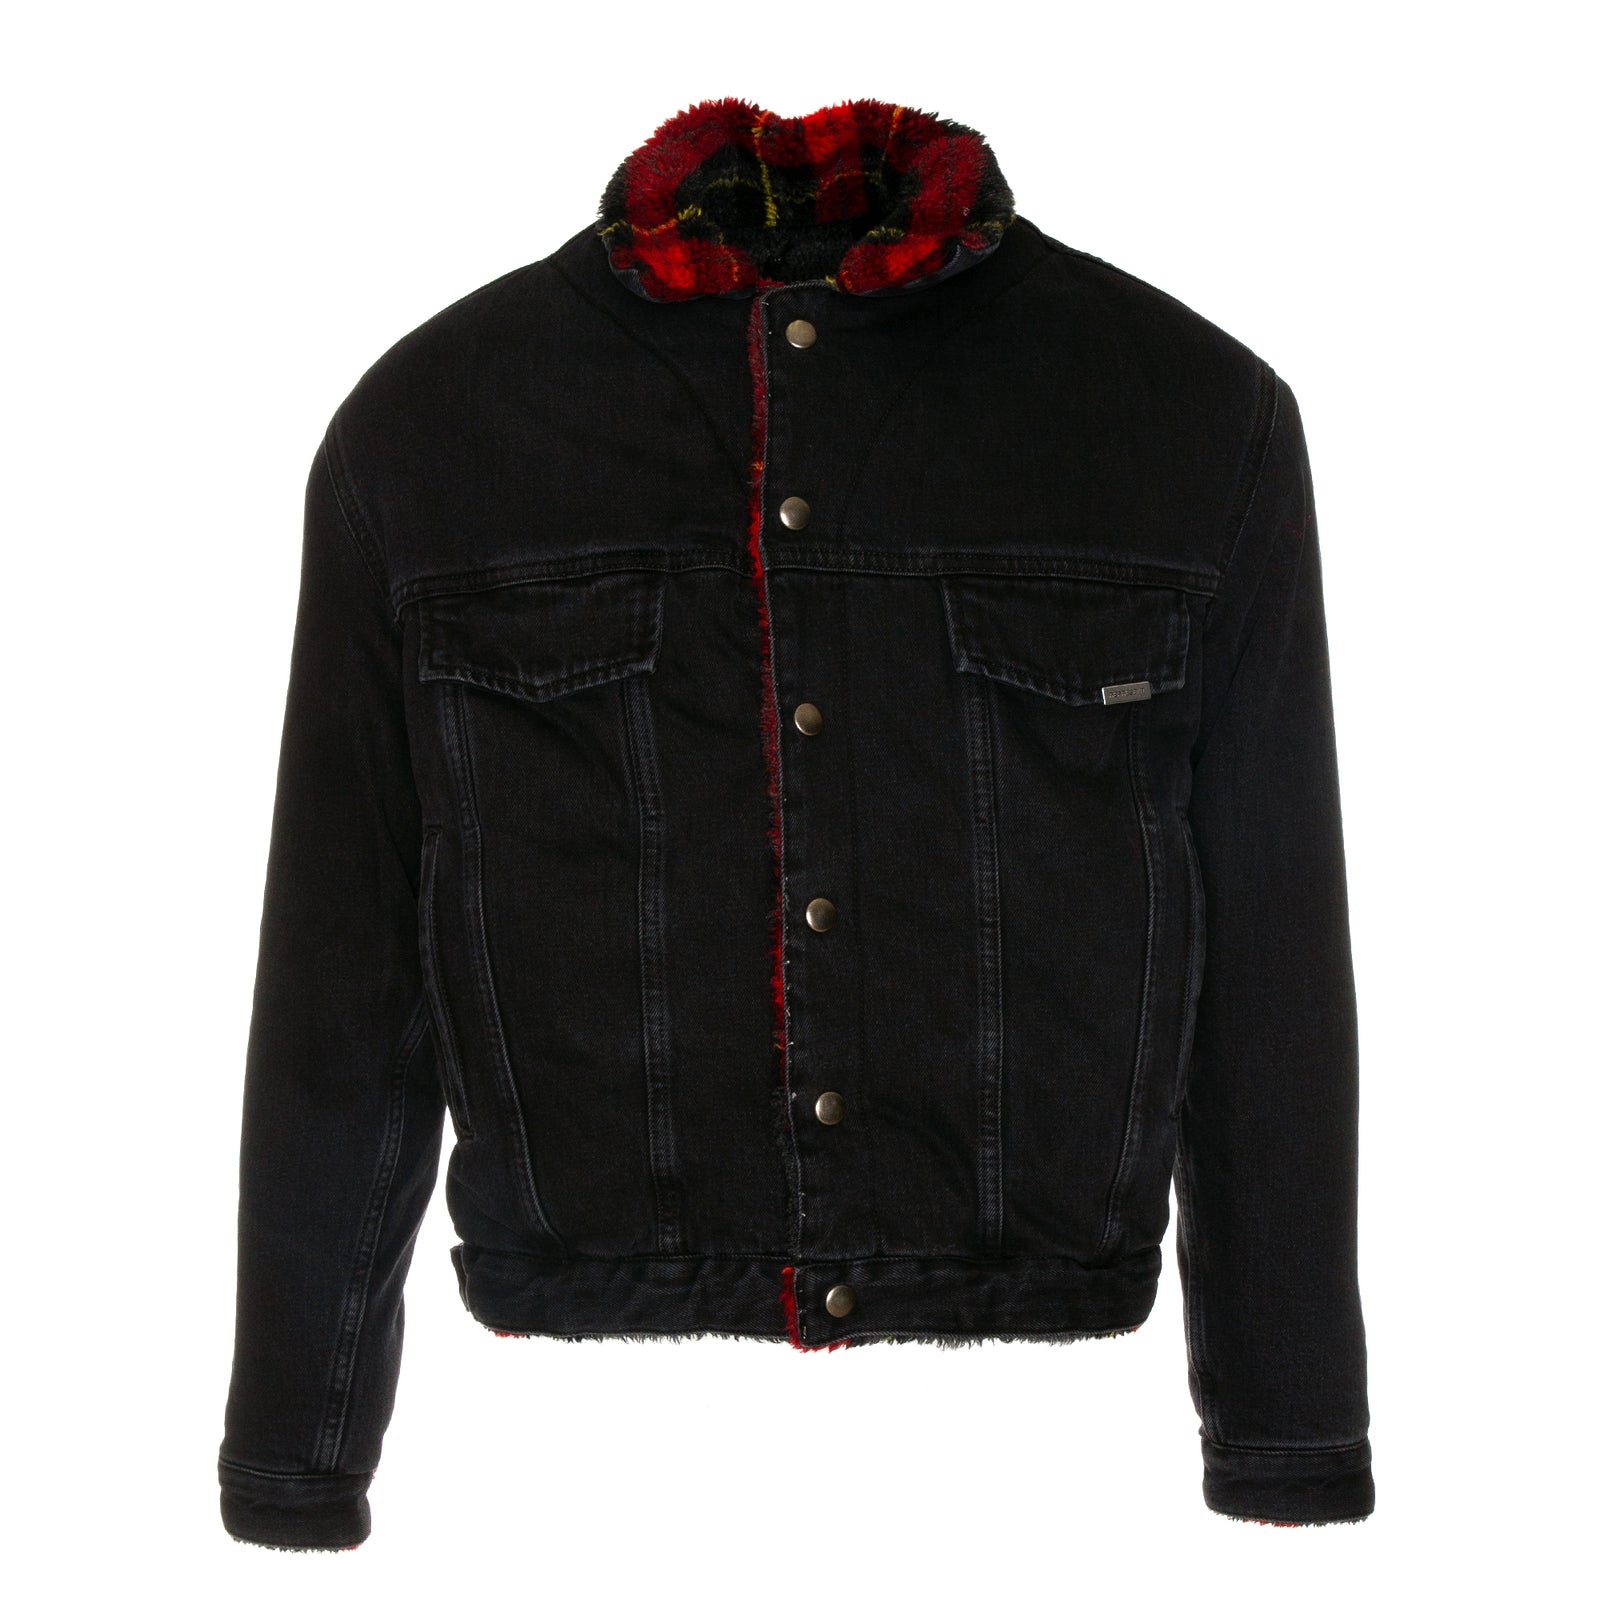 Represent Reversible Sherpa Denim Jacket in Black with Plaid Lining